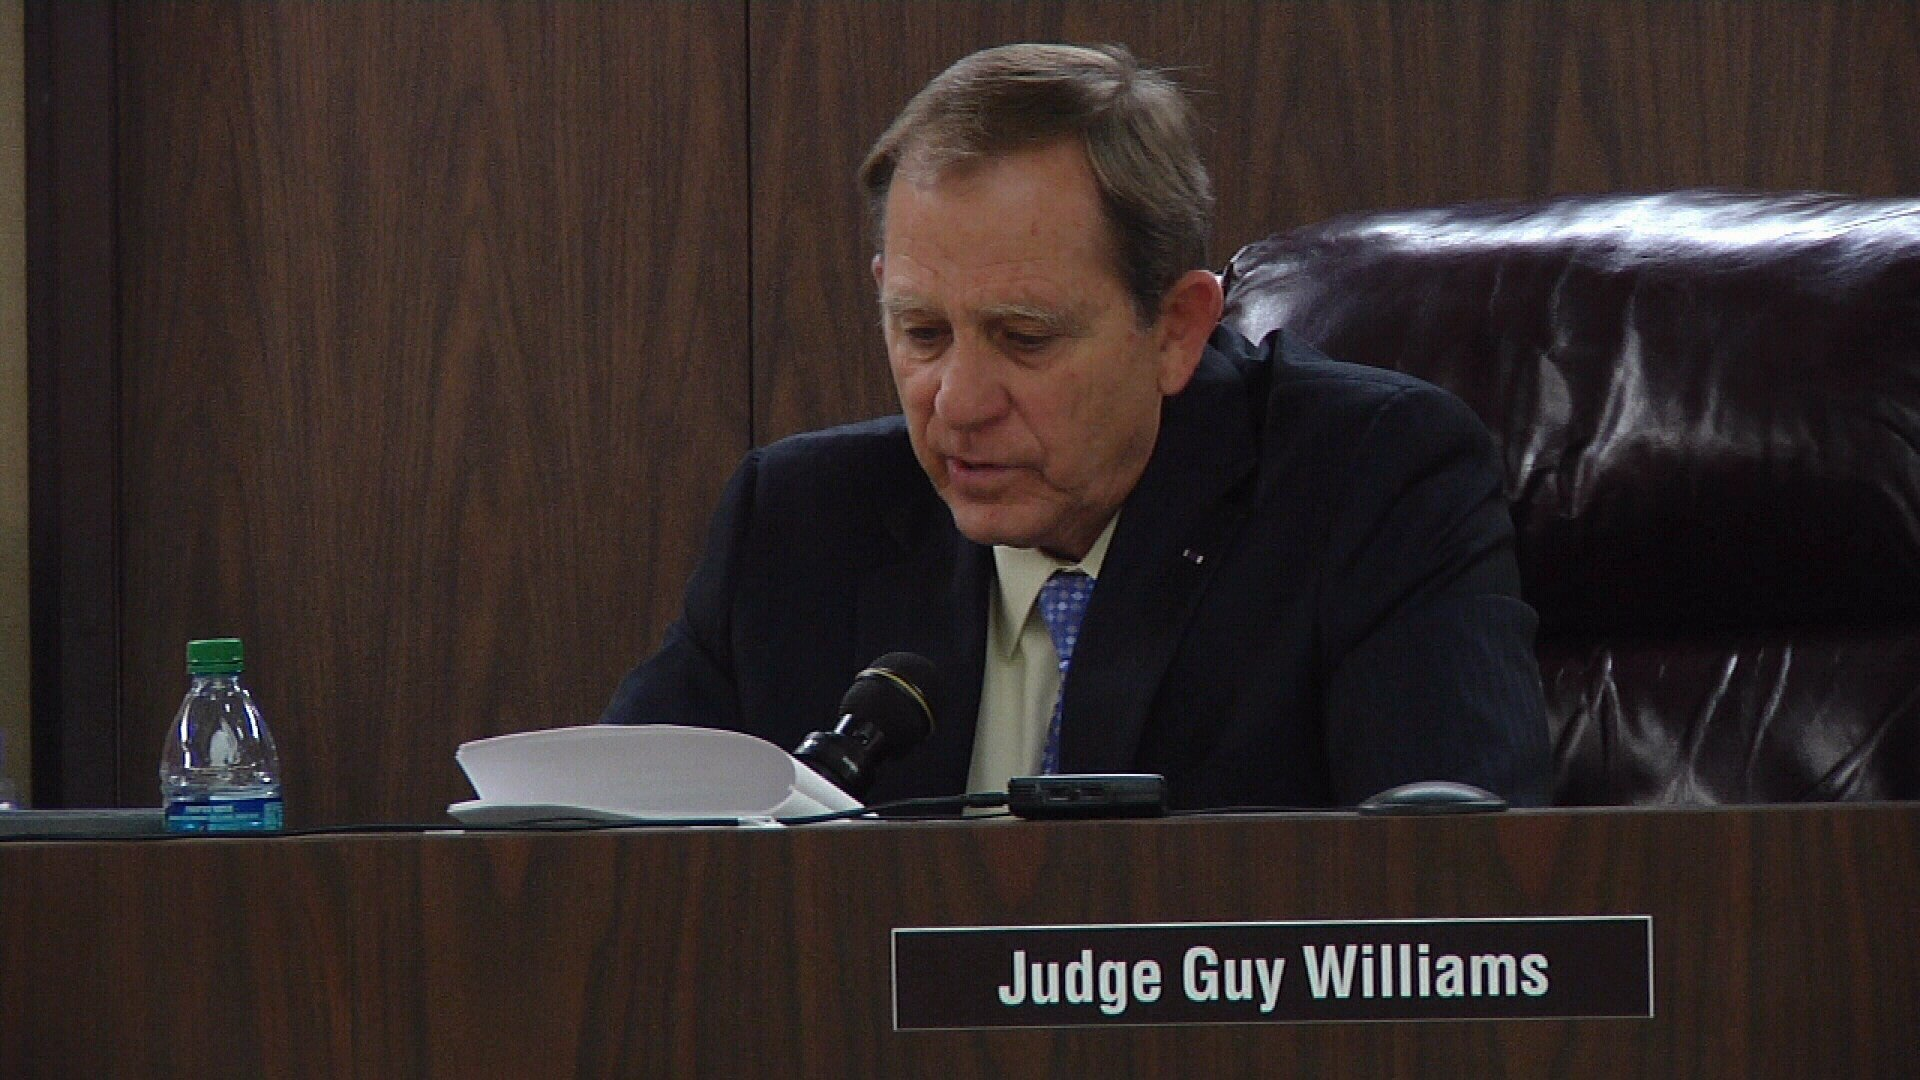 Judge Guy Williams is accused of being involved in a road rage incident near Airline and South Padre Island Drive.